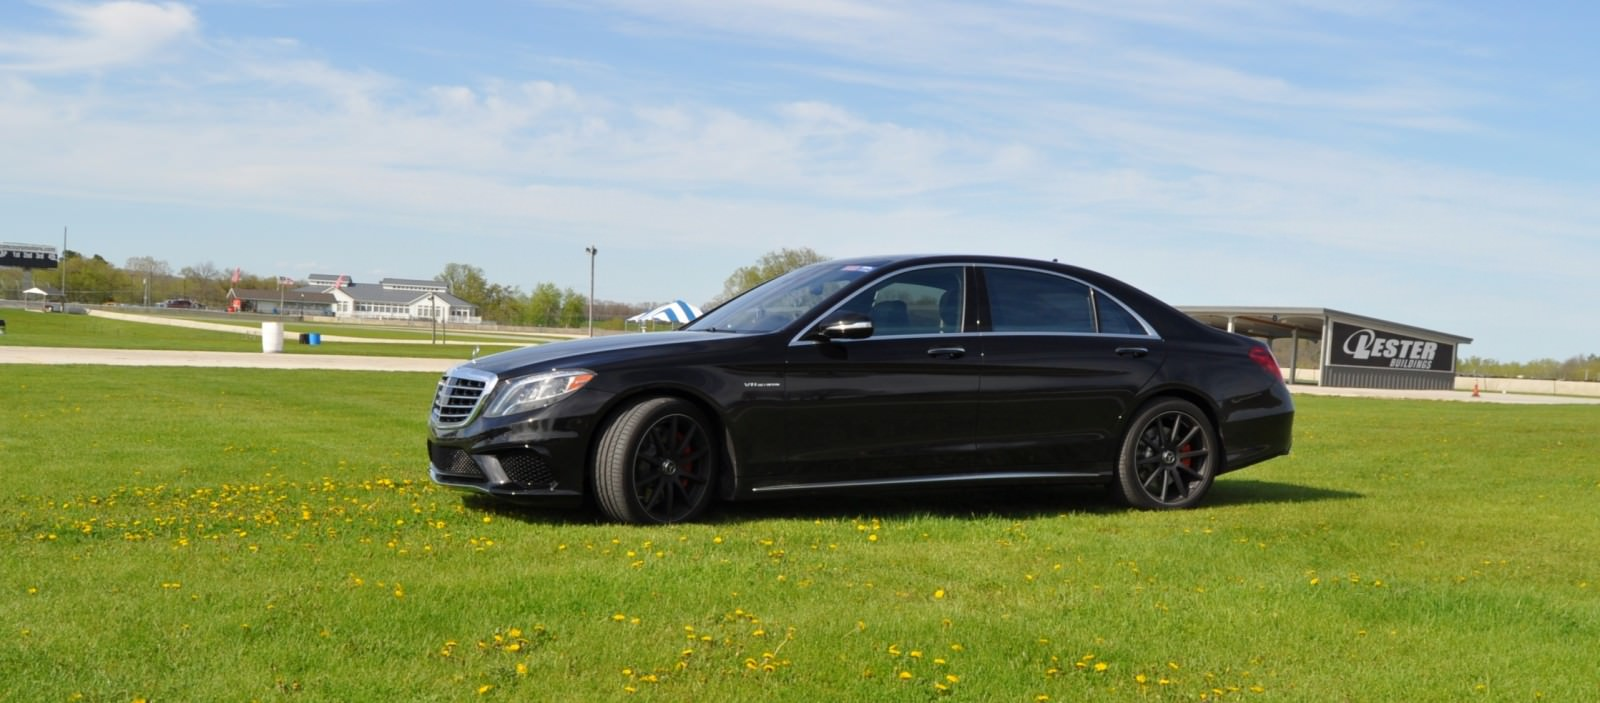 Road test review 2014 mercedes benz s63 amg 4matic sedan for 2014 mercedes benz s class s63 amg 4matic